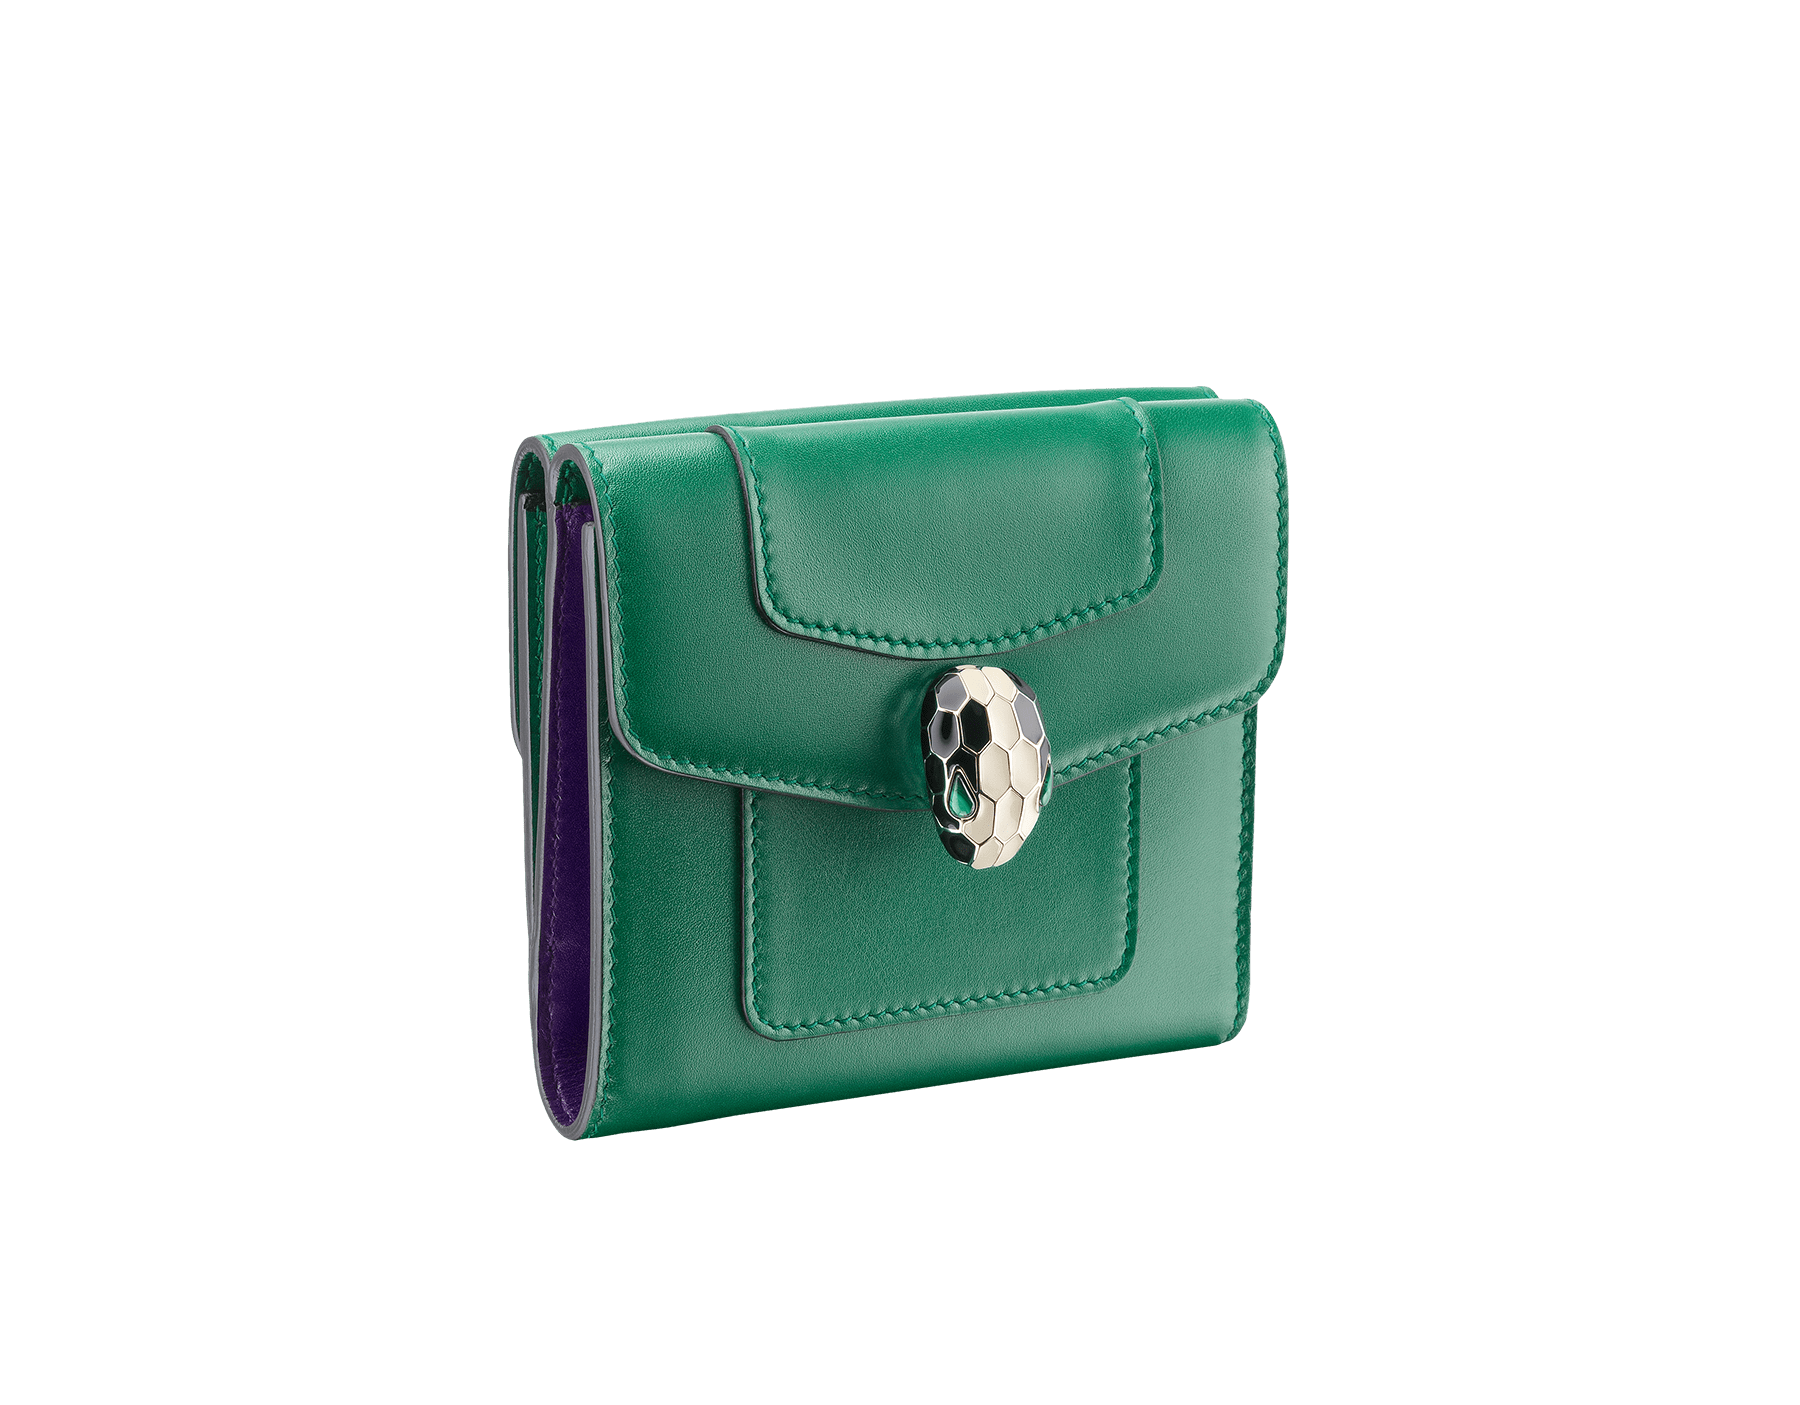 """Serpenti Forever"" square compact wallet in Lavander Amethyst lilac and Reef Coral red calf leather. Iconic snakehead stud closure in black and white agate enamel, with green malachite eyes. SEA-WLT-COMPACT-3Fb image 1"